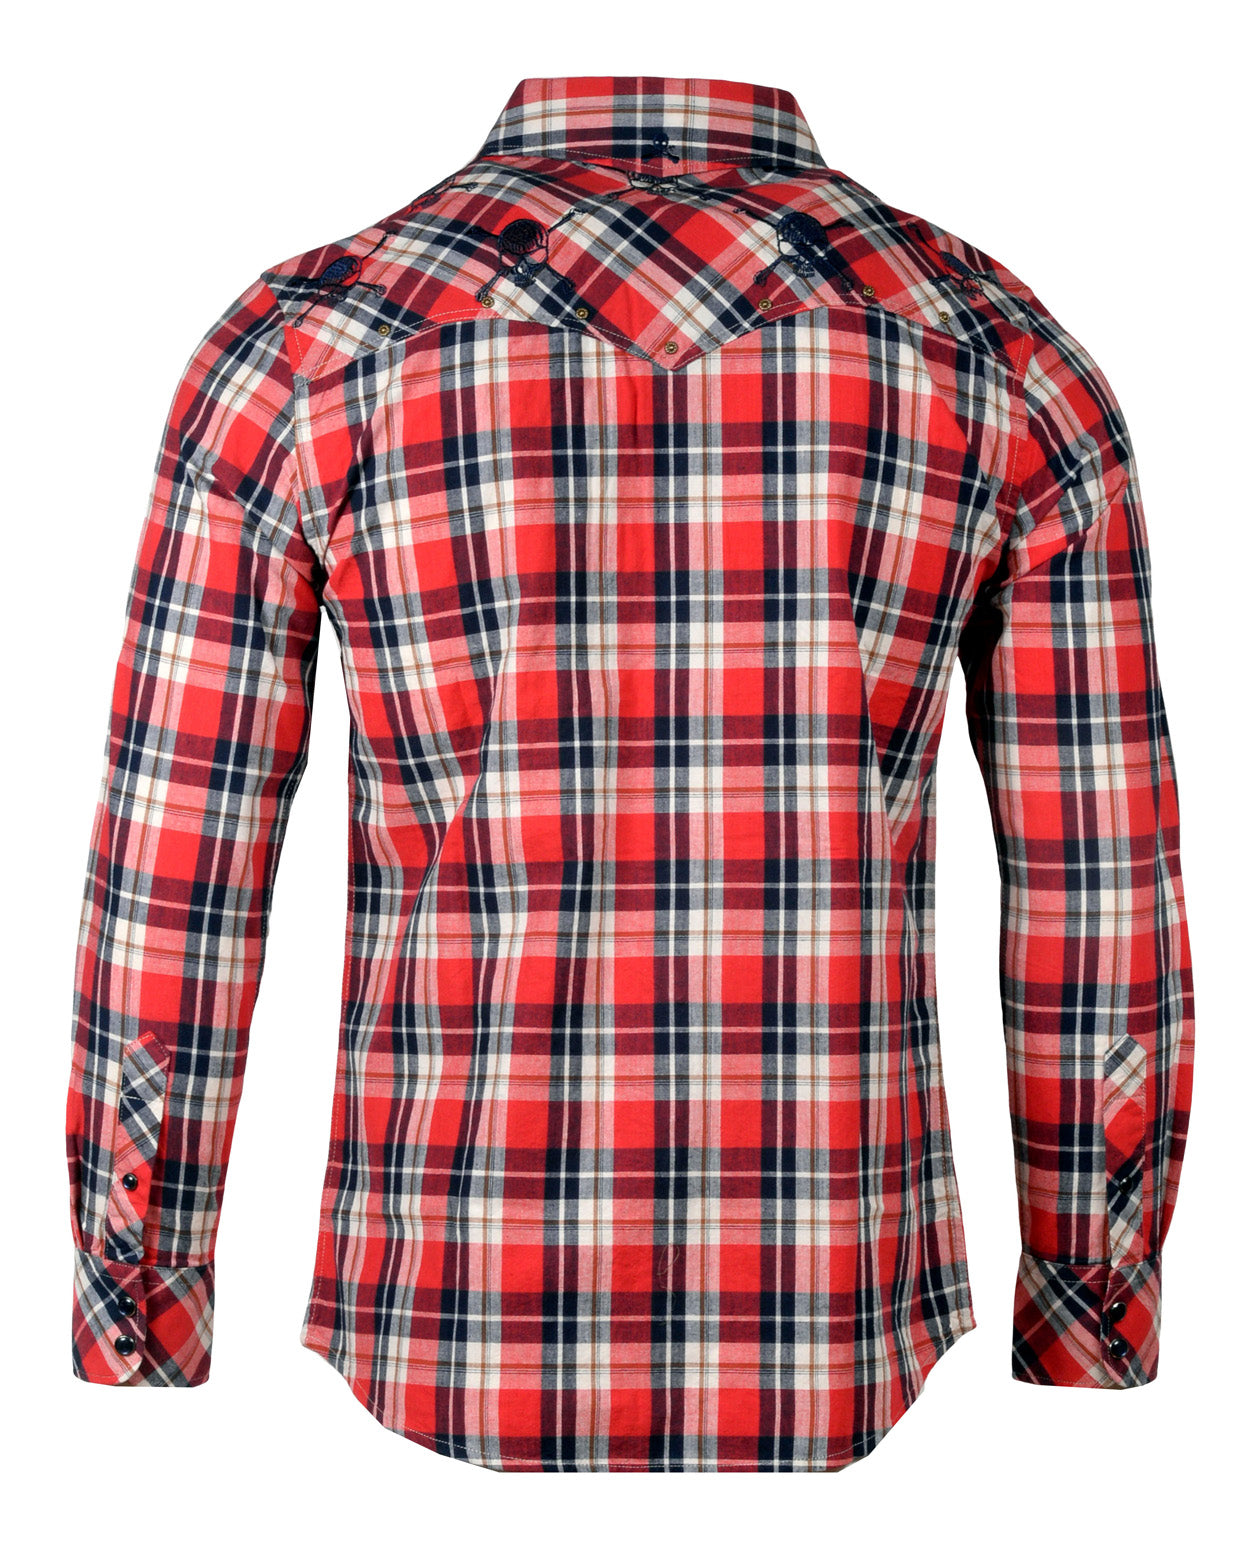 Men's Casual Fashion Button Up Shirt - Red Solo Cup by Rock Roll n Soul